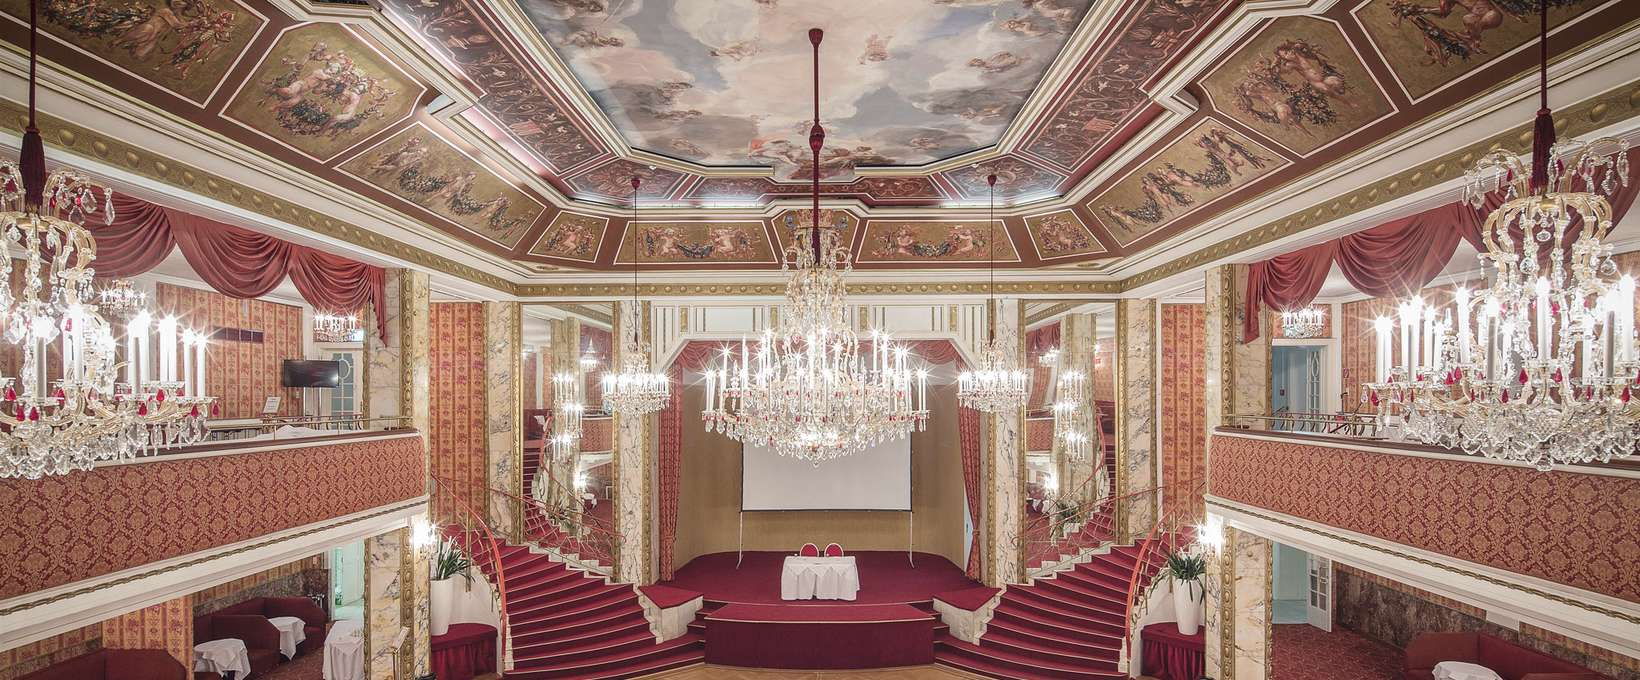 Ballroom stage with stairs and lounges | Parkhotel Schönbrunn in Vienna